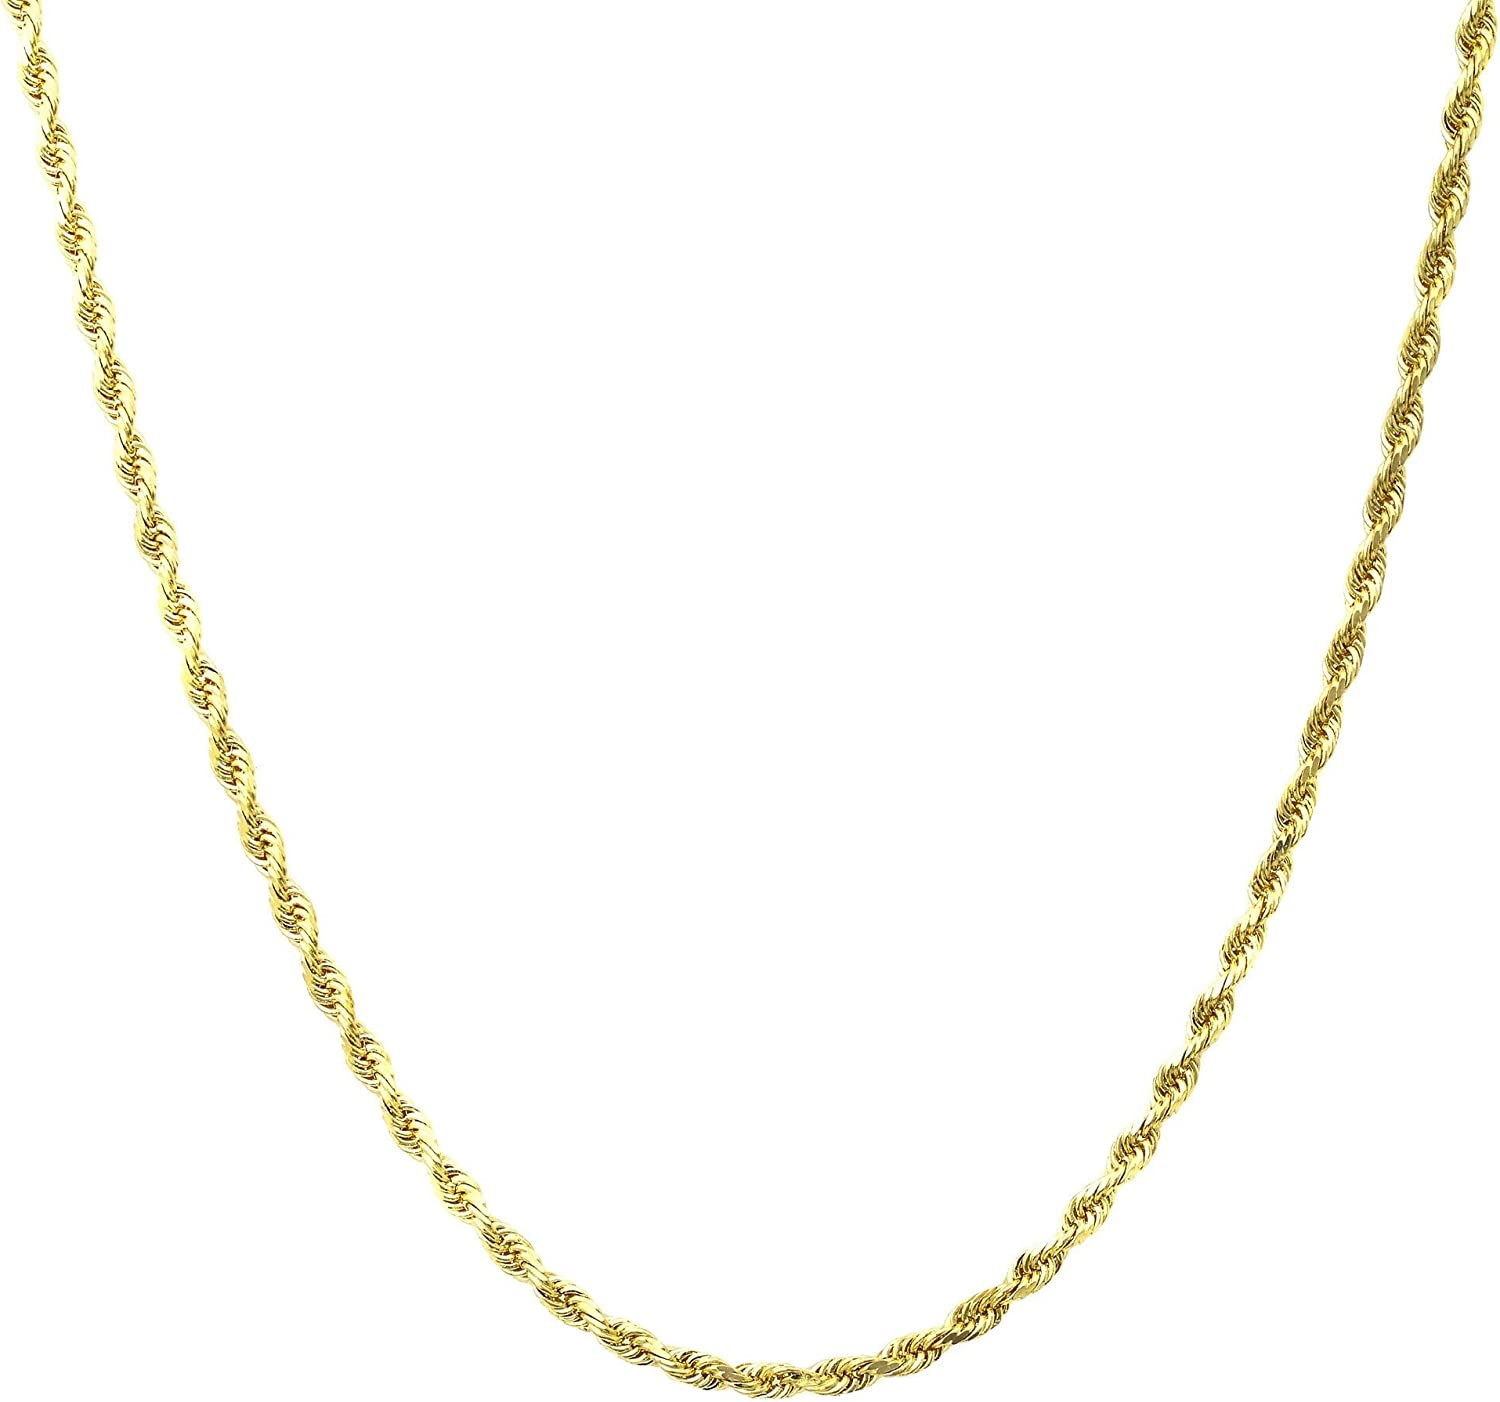 "18K Gold 1.8MM Diamond Cut Rope Chain Necklace Unisex Sizes 16""-30"" - Yellow, White, Or Rose Gold"